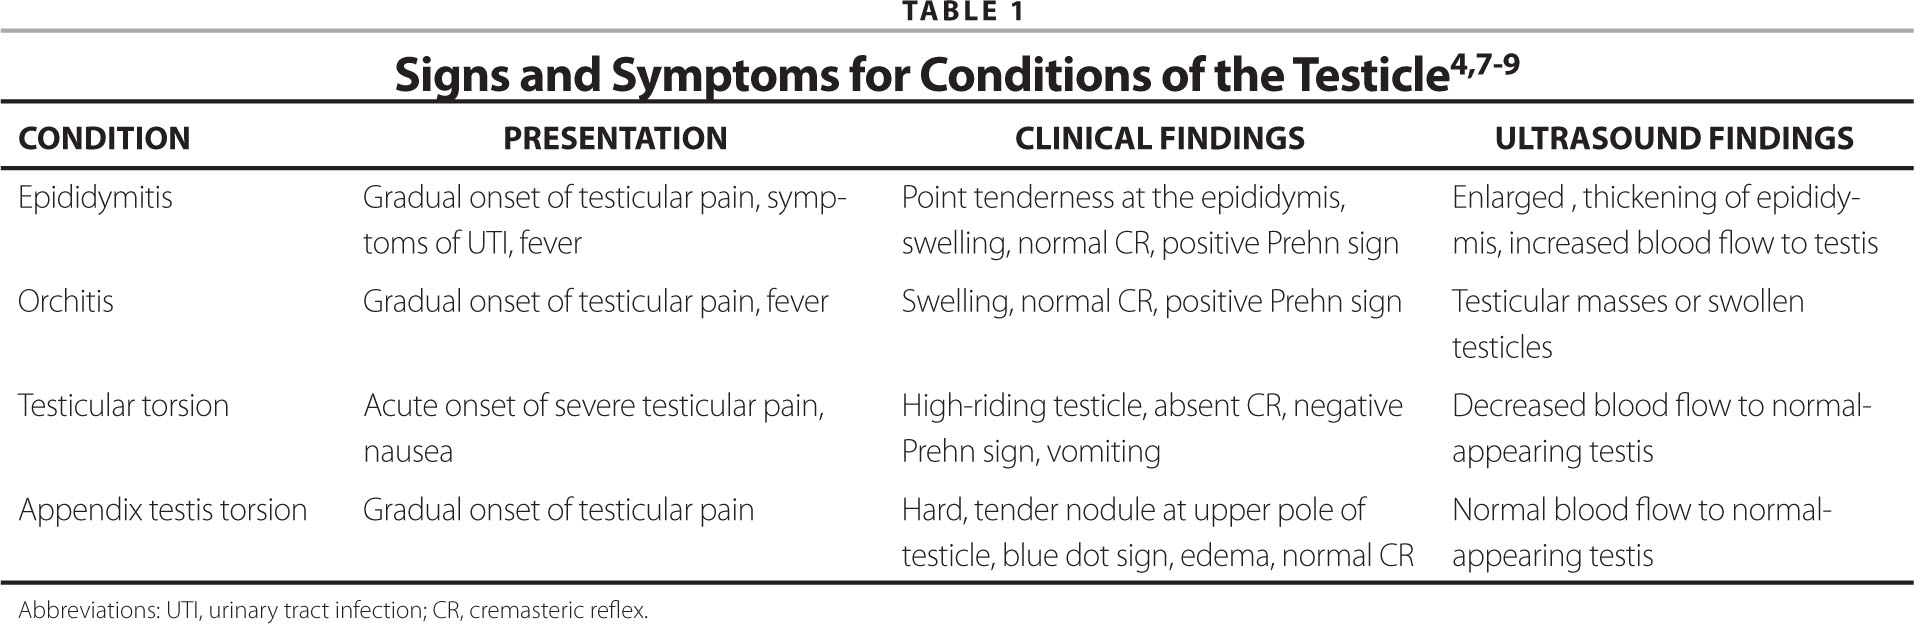 testicular torsion treatment. signs and symptoms for conditions of the testicle4,7\u20139 testicular torsion treatment t